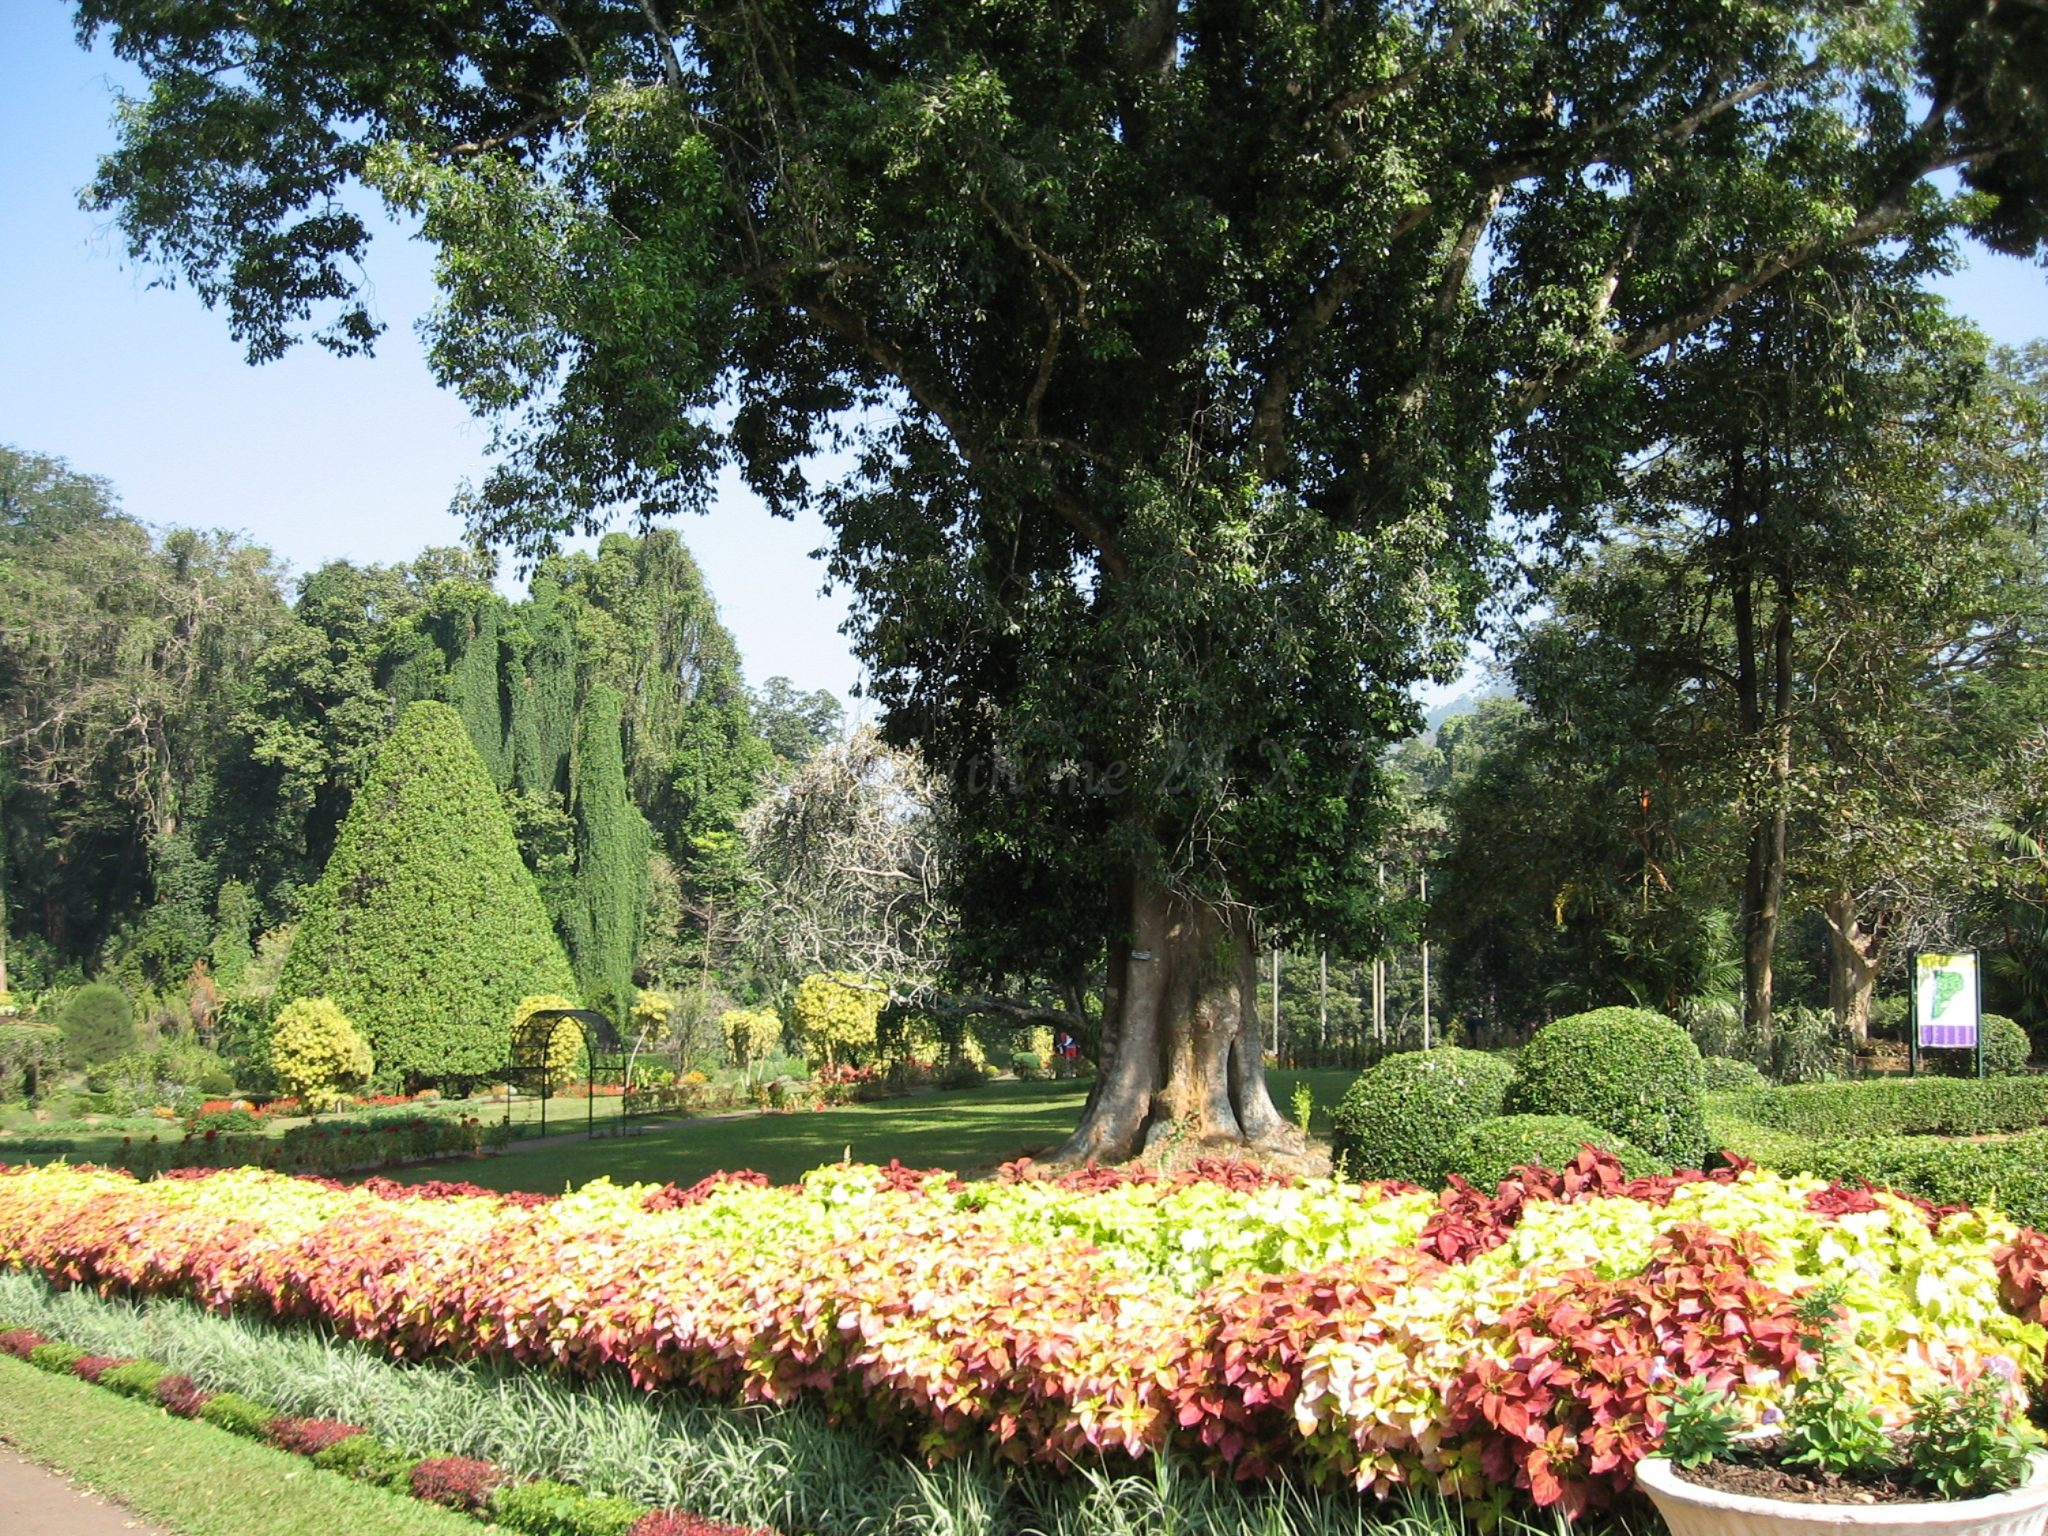 Glimpses Of Royal Botanical Garden Travel With Me 24 X 7